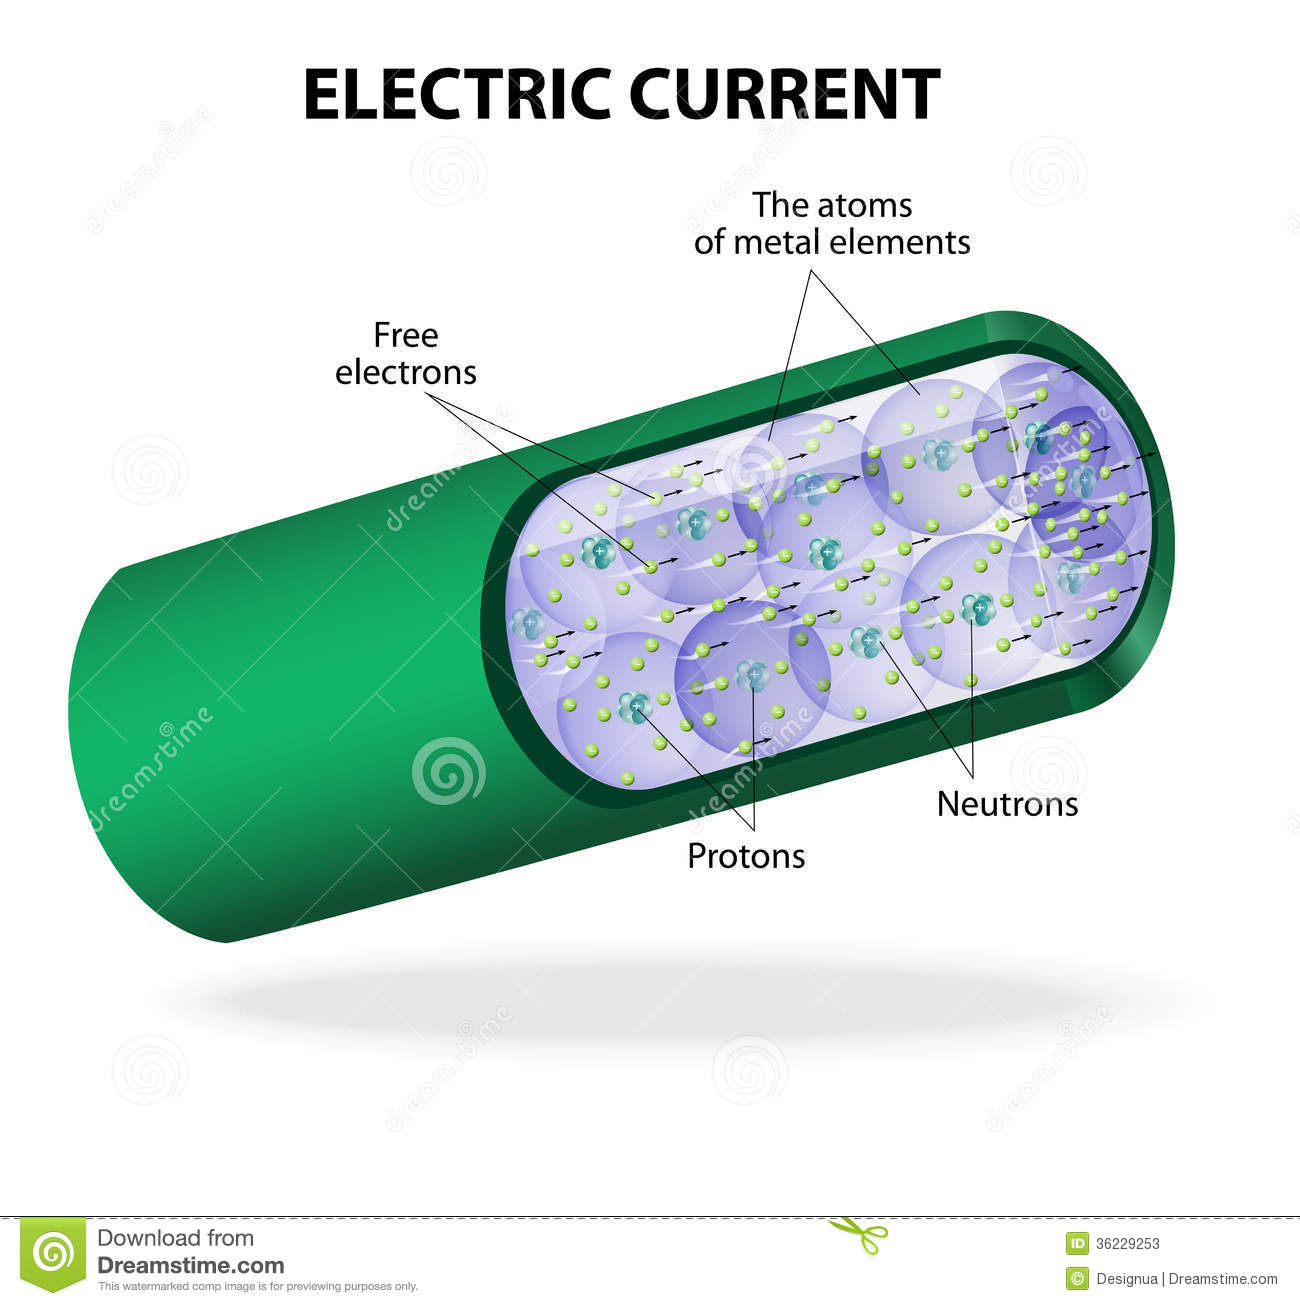 electric current vector diagram stock vector illustration of atomelectric current is the flow of electrons in electric circuits this charge is carried by moving electrons in a wire a conductive metal contains free